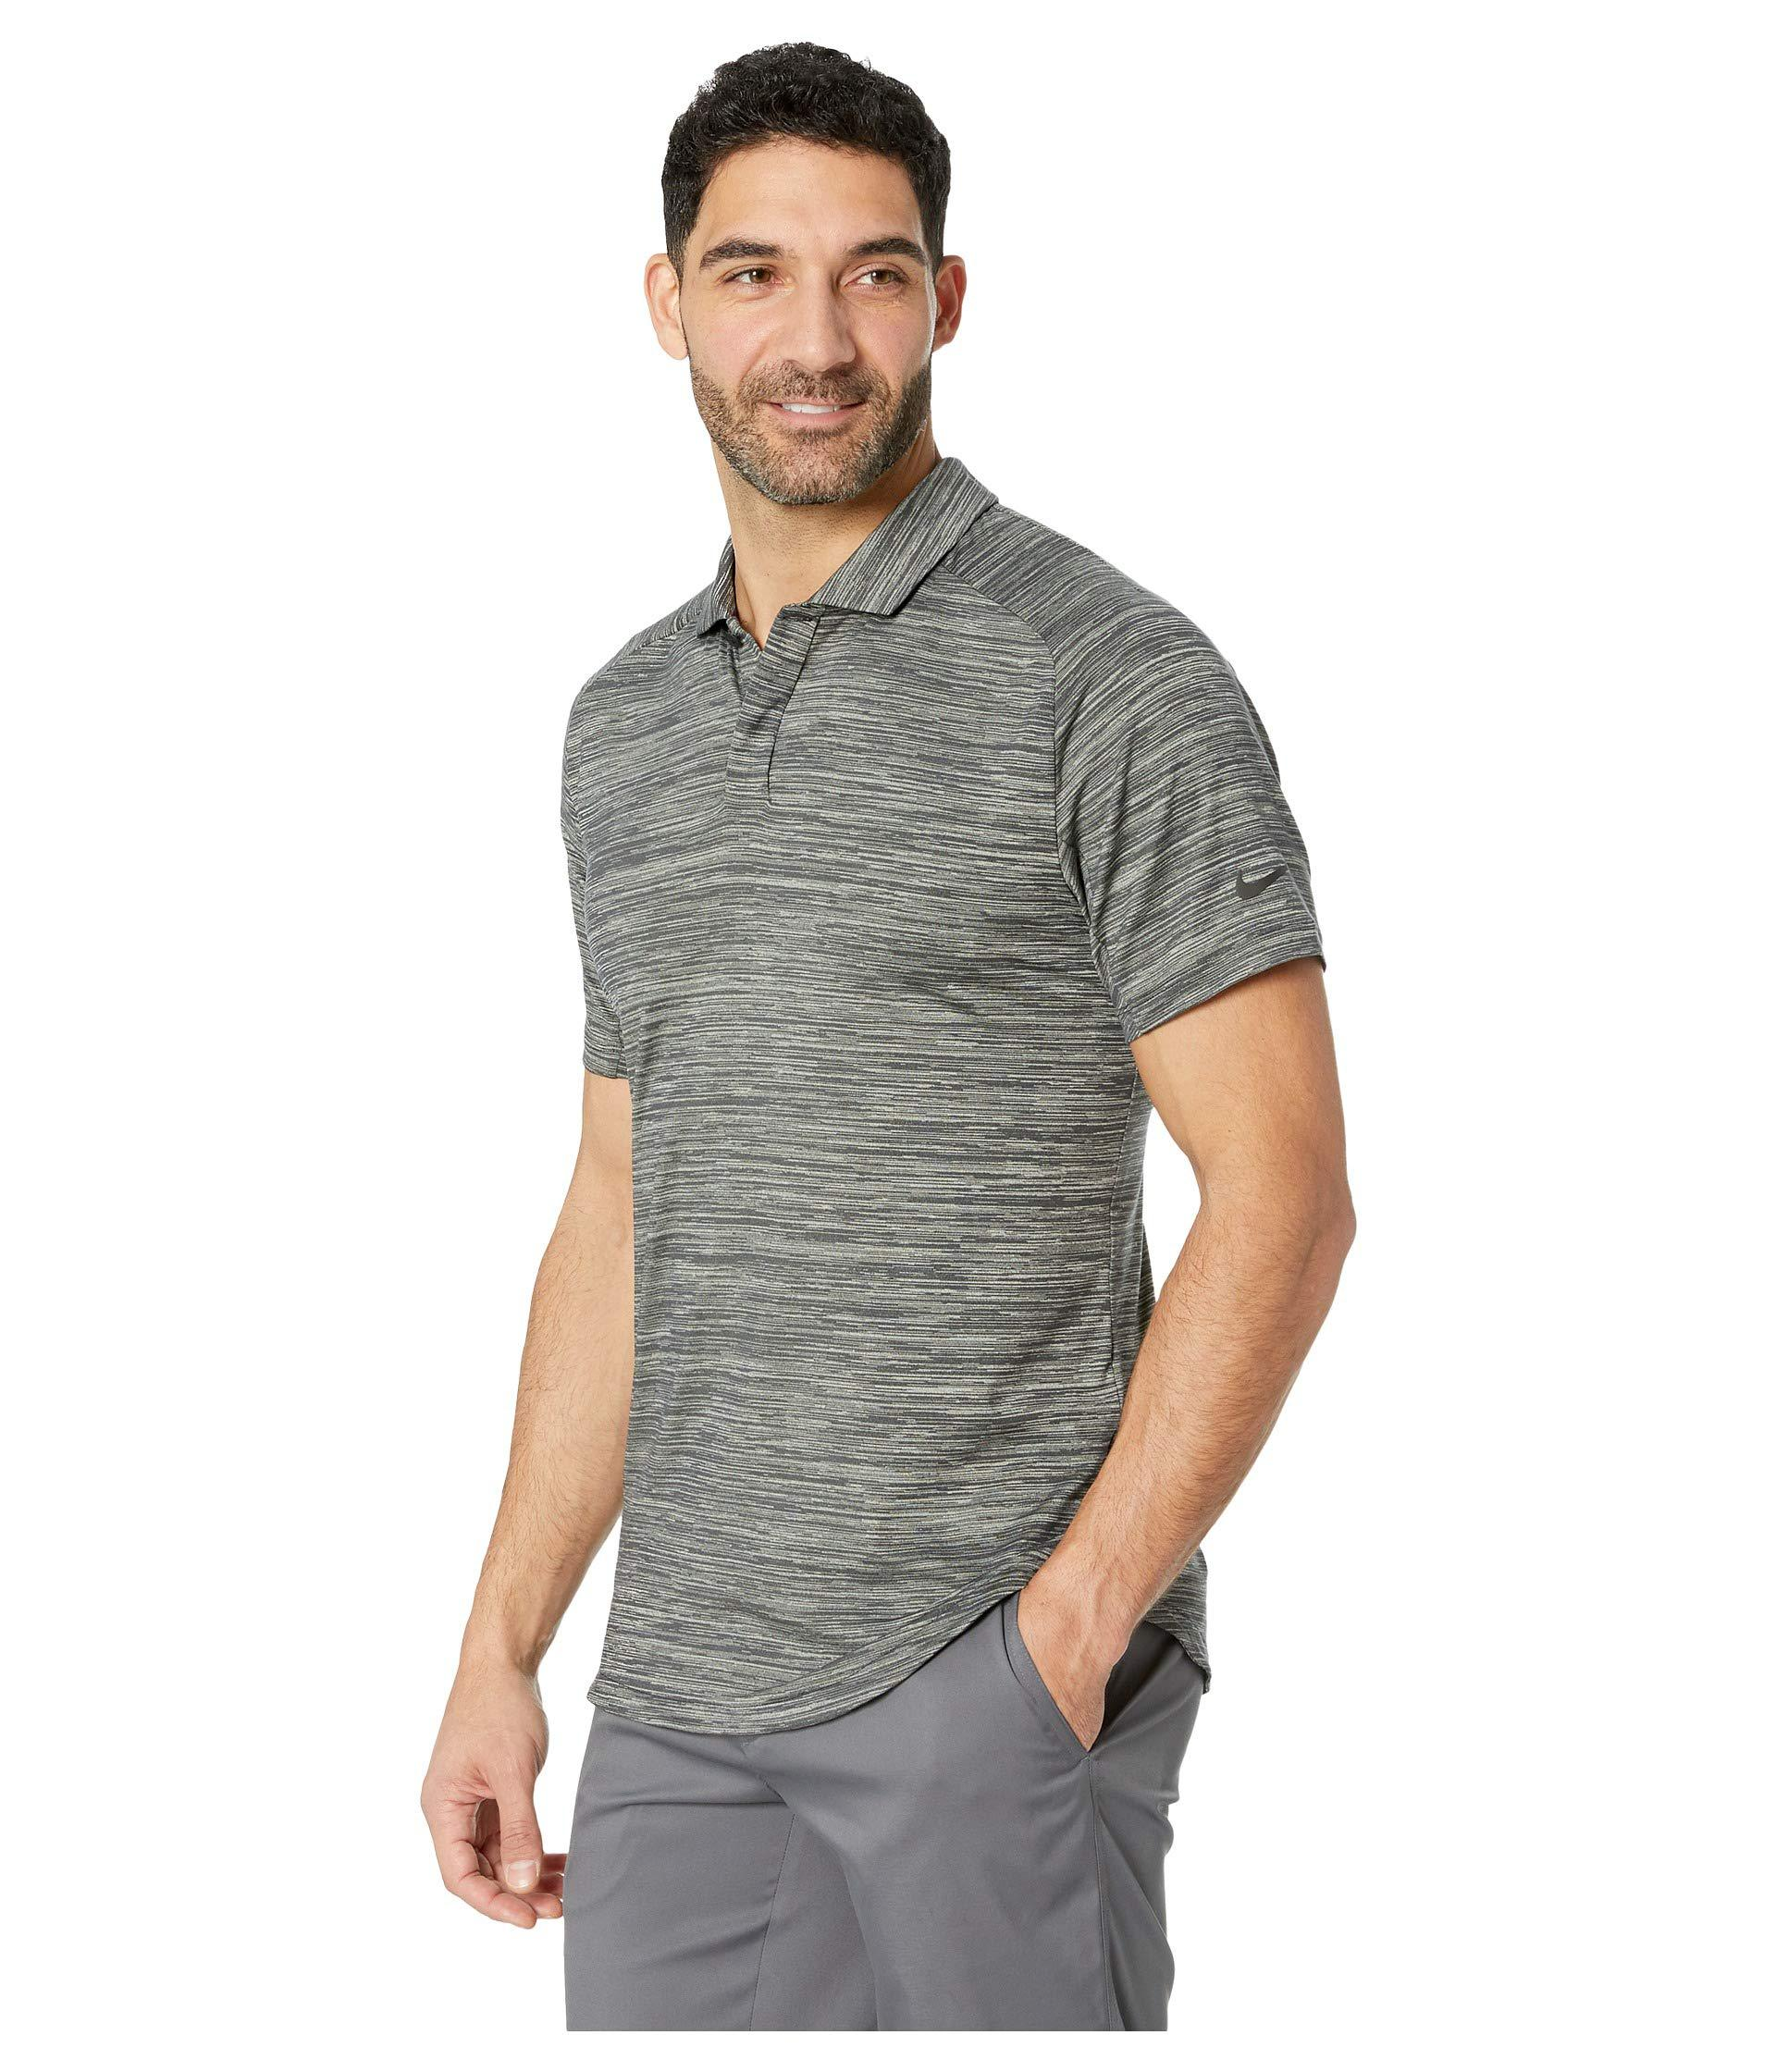 0cd0259f Lyst - Nike Dry Polo Heather Raglan in Black for Men - Save 13%